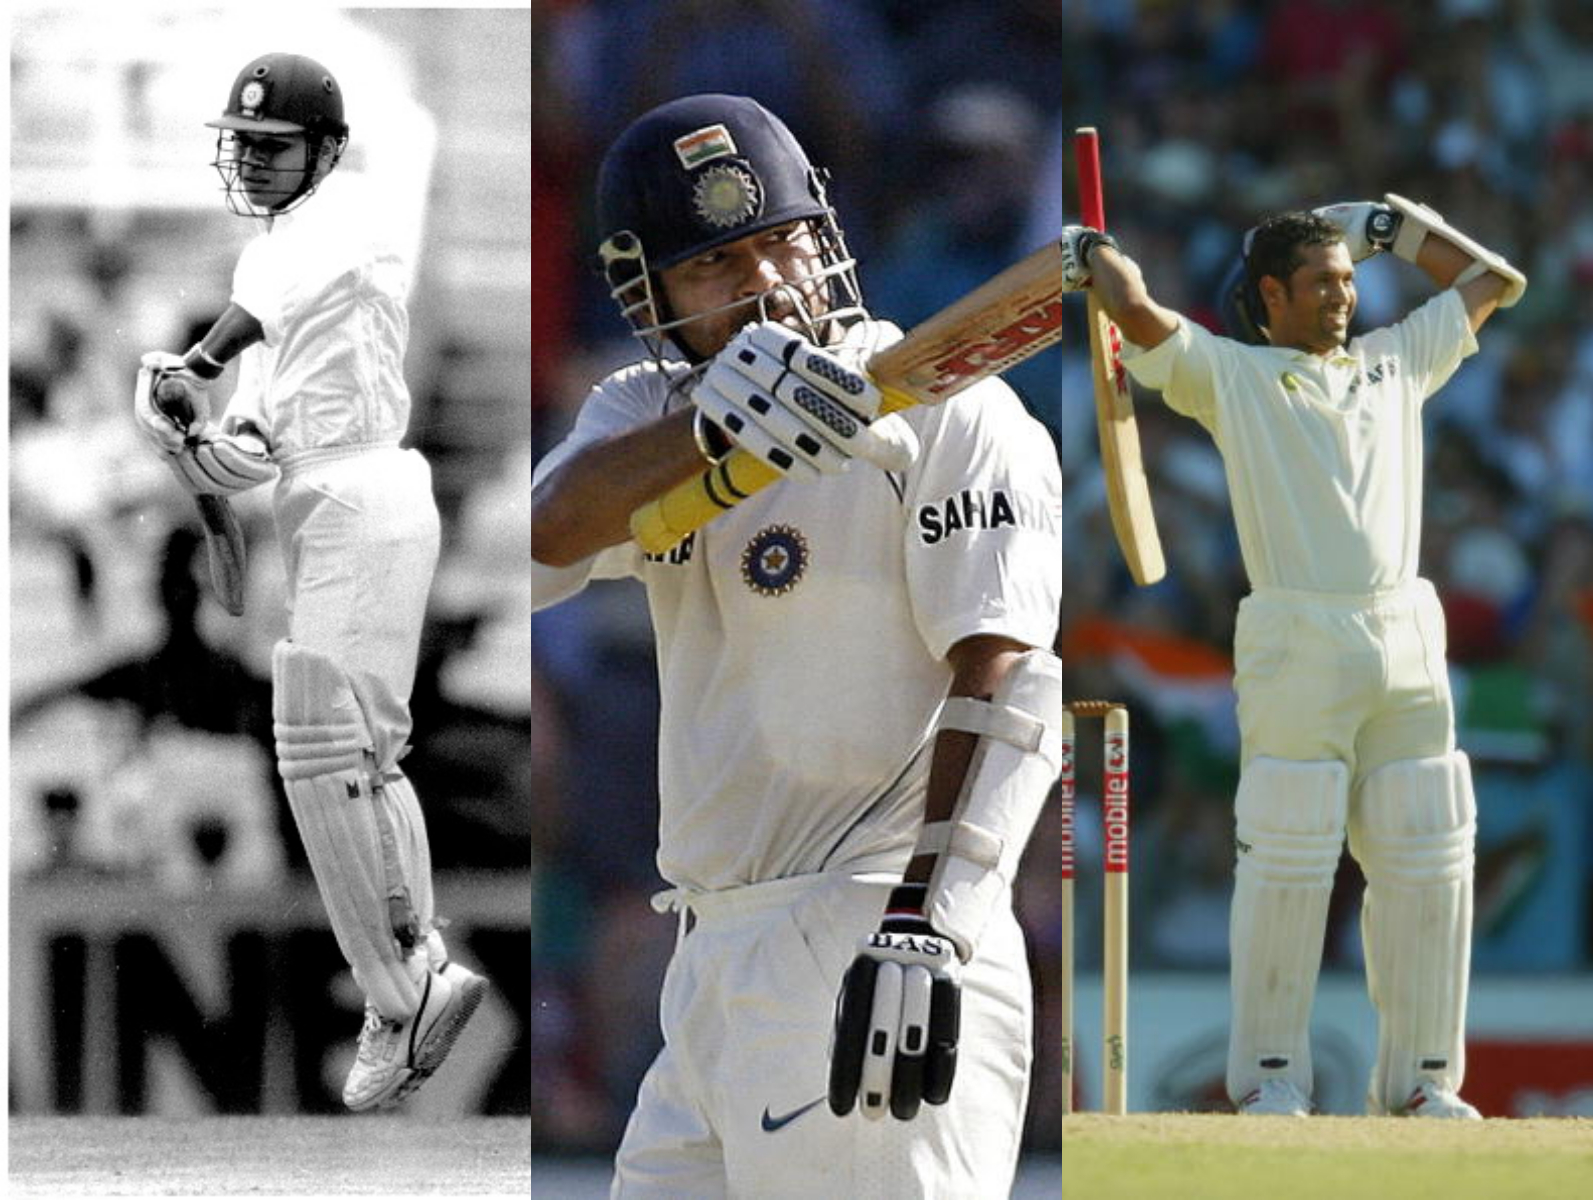 Sachin Tendulkar impressed one and all with three brilliant centuries at the SCG in 1992, 2004 and 2008 | Getty